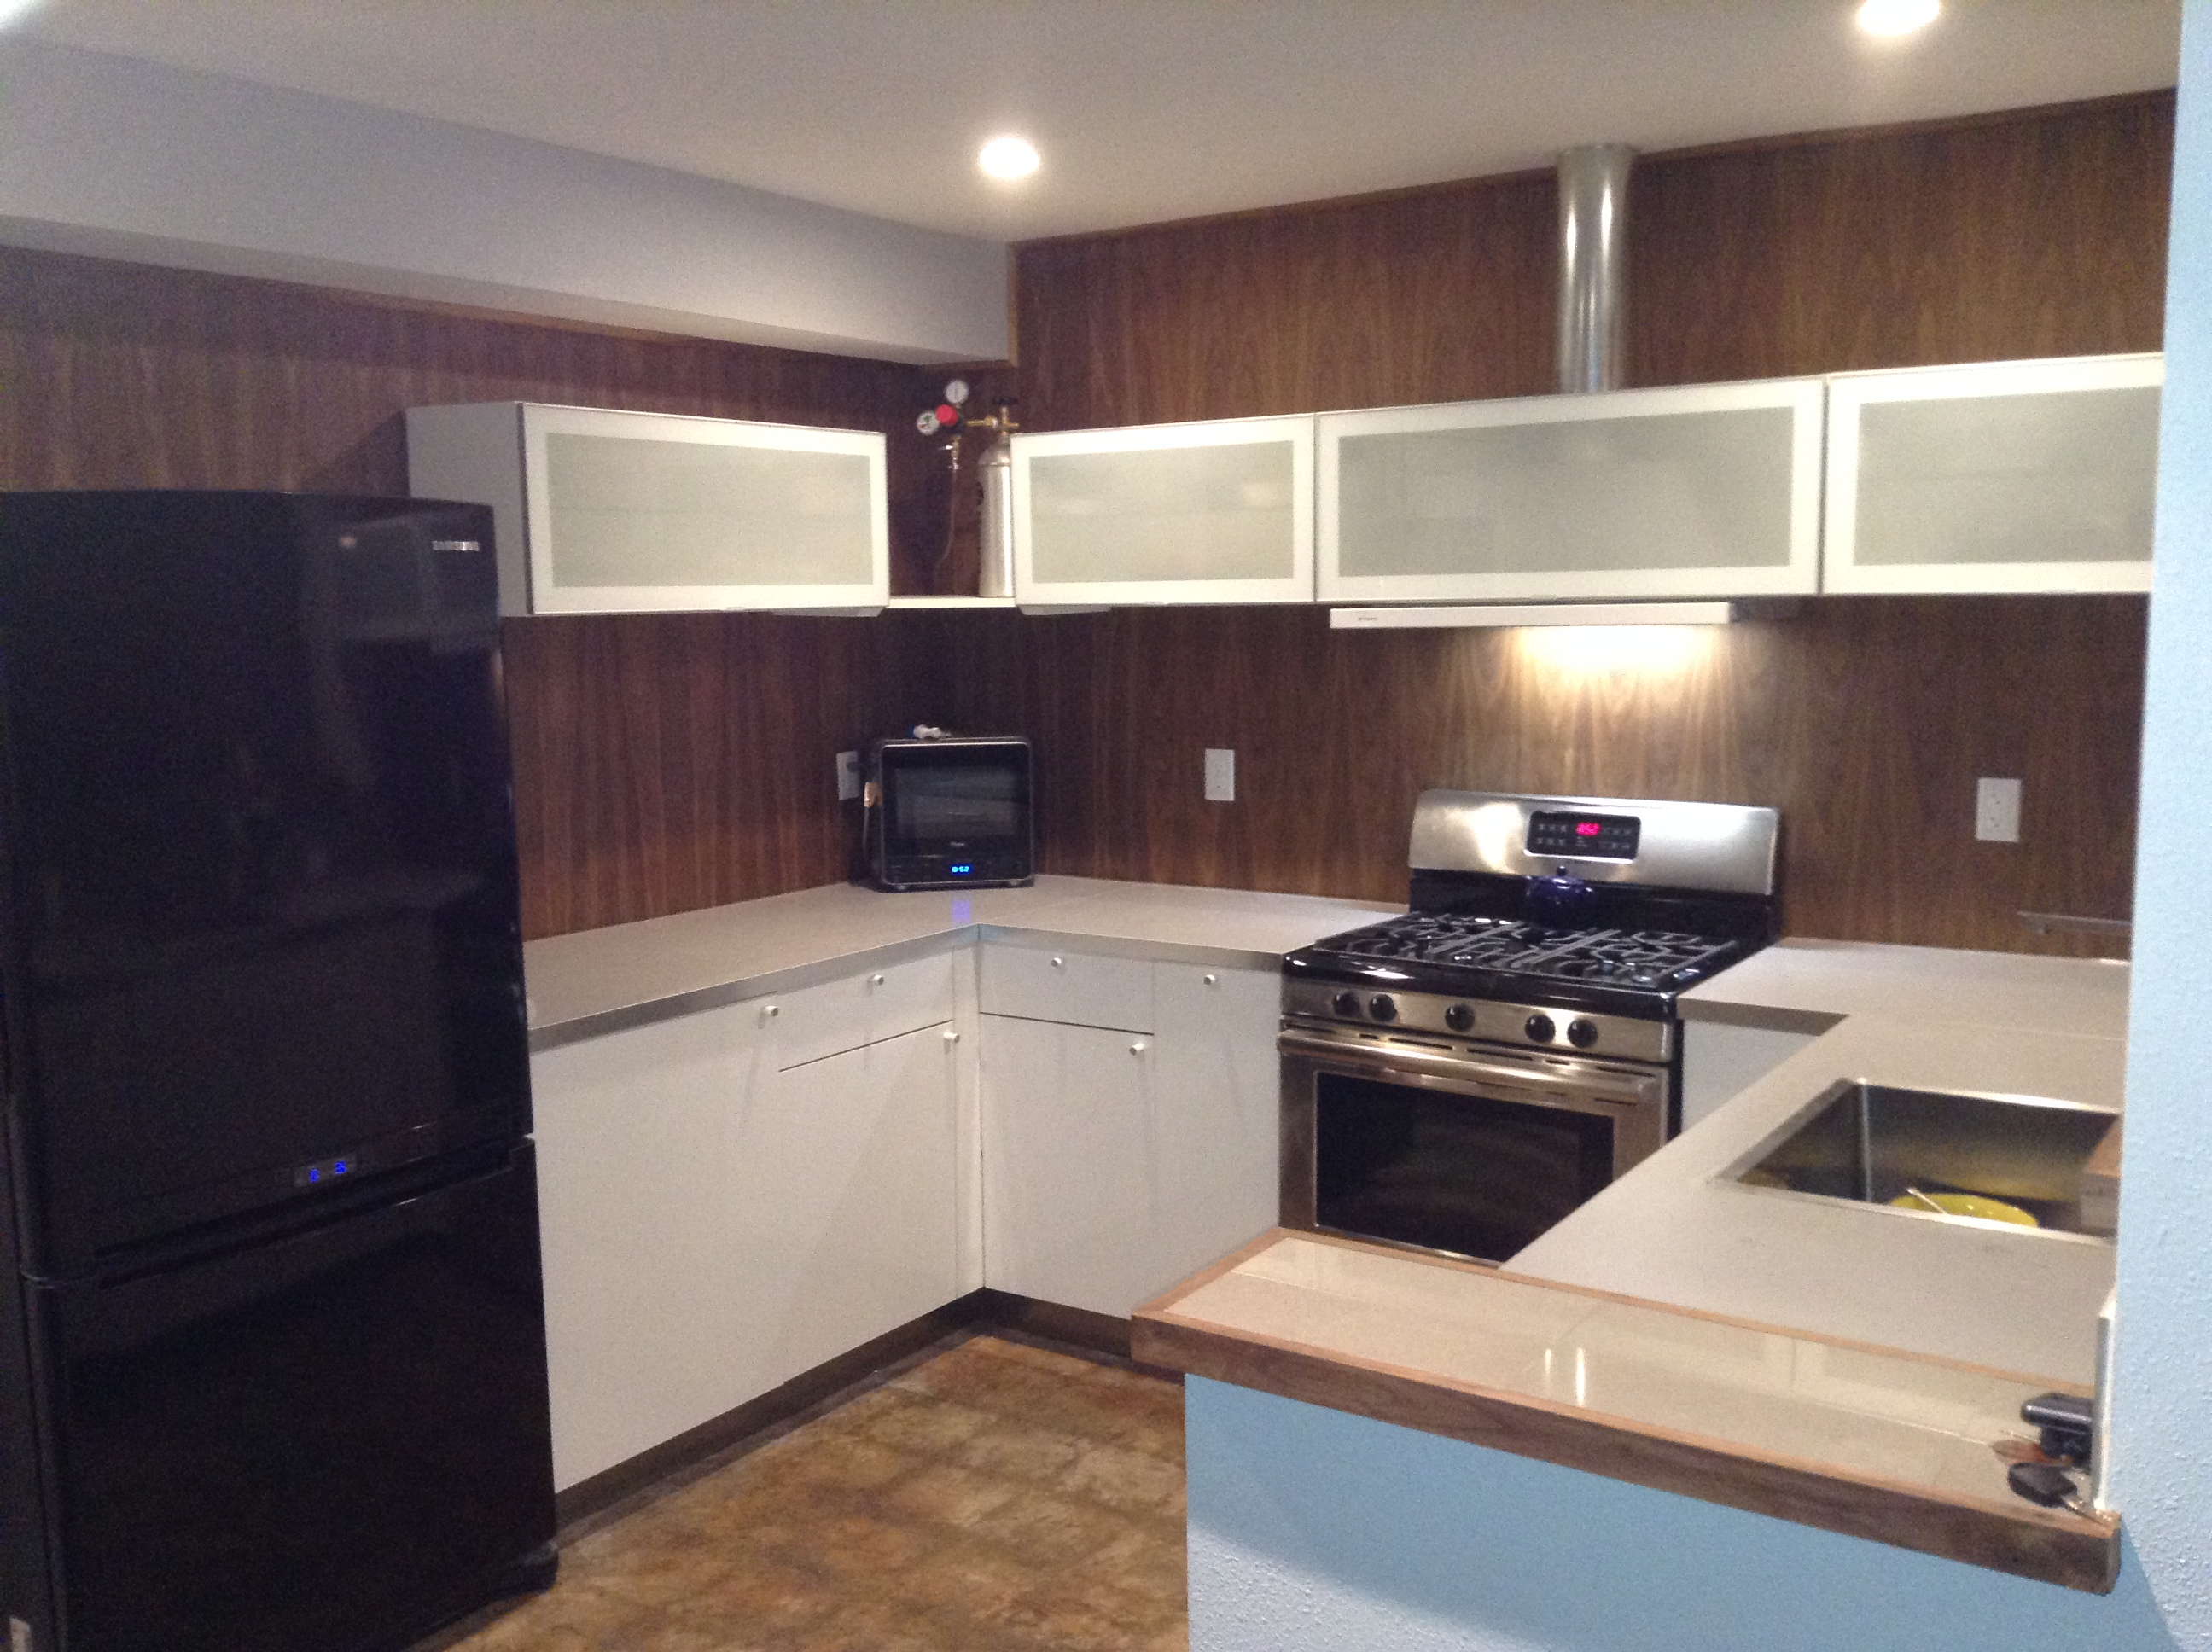 ikea kitchen countertop small table and chairs for two my install floor paneling countertops sink home img 1998 jpg